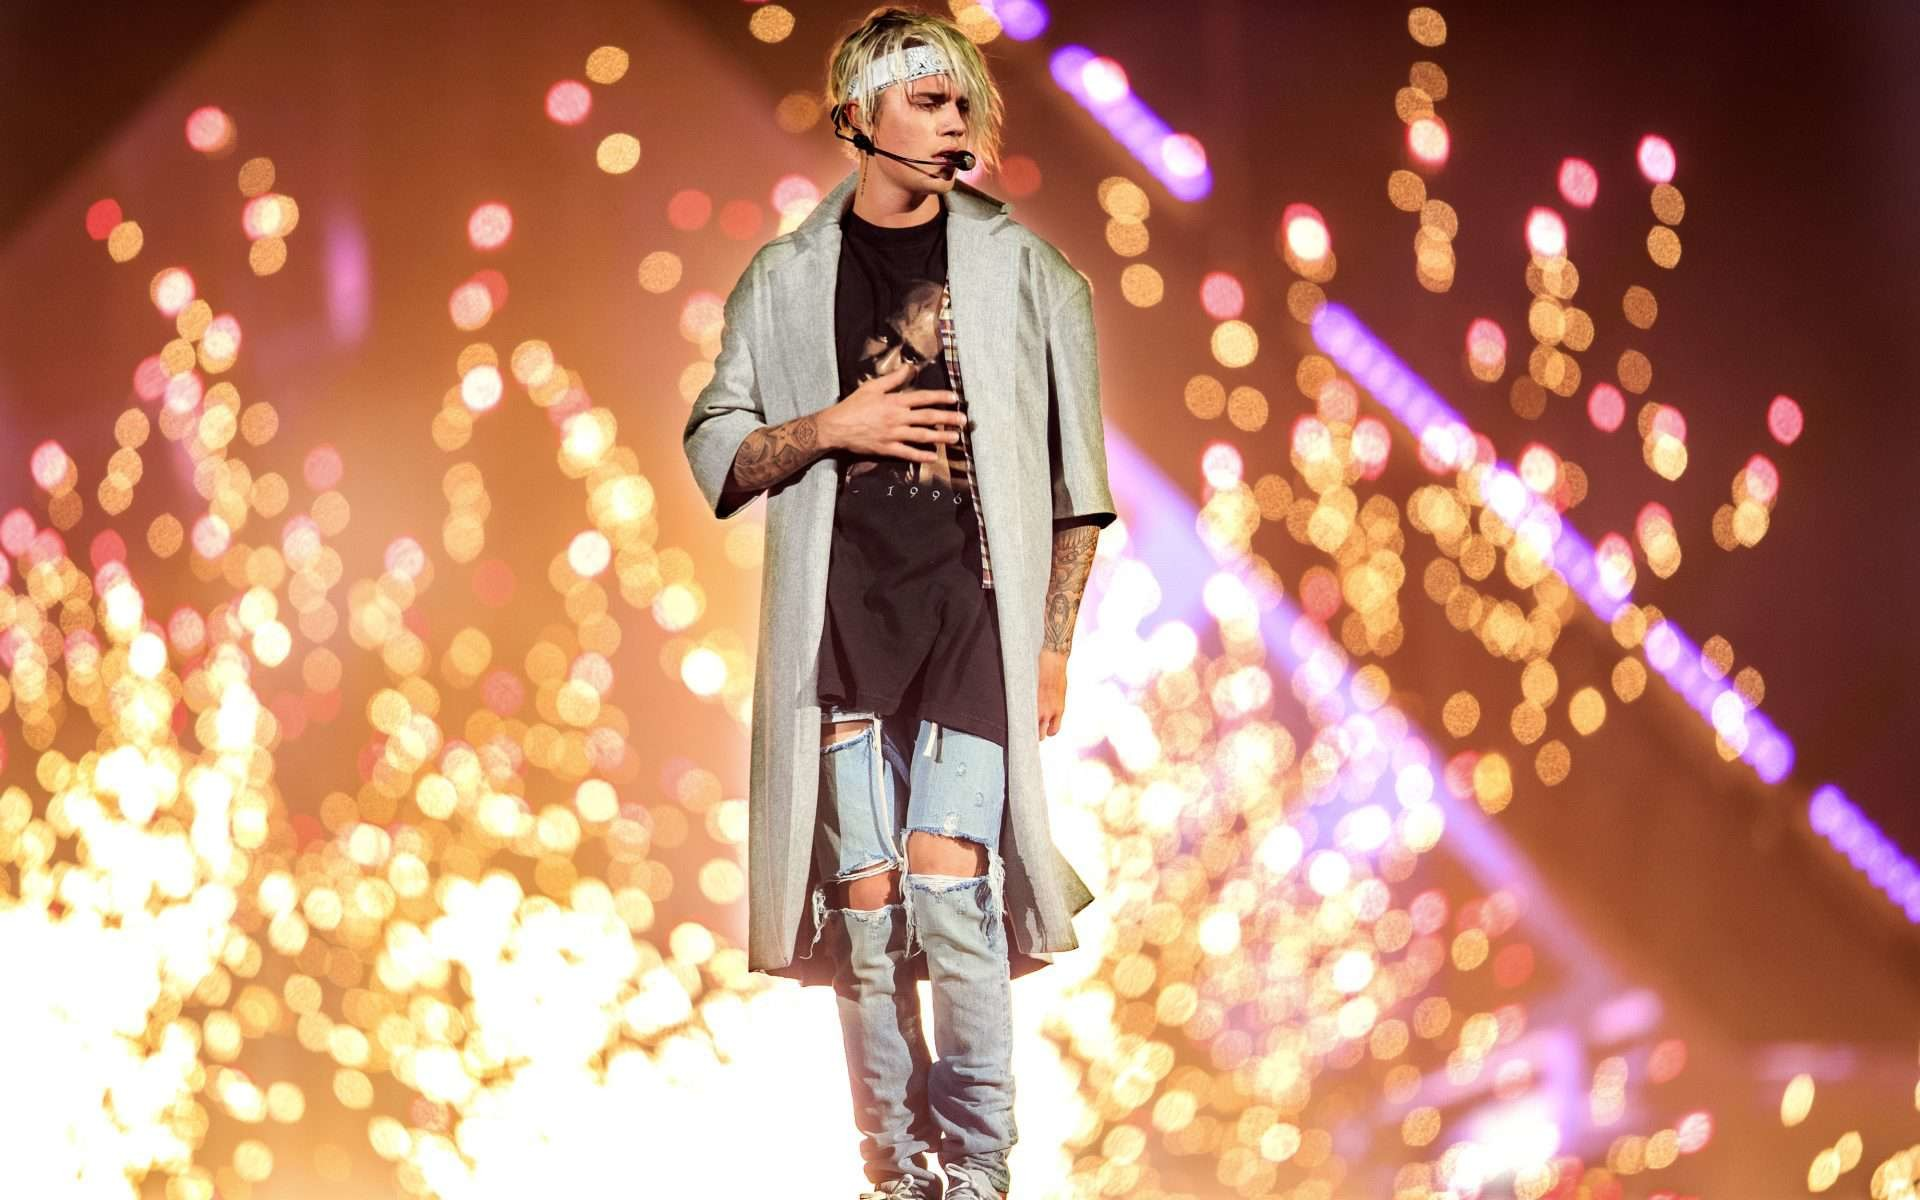 Wallpapers Of Justin Bieber 2018 74 Background Pictures